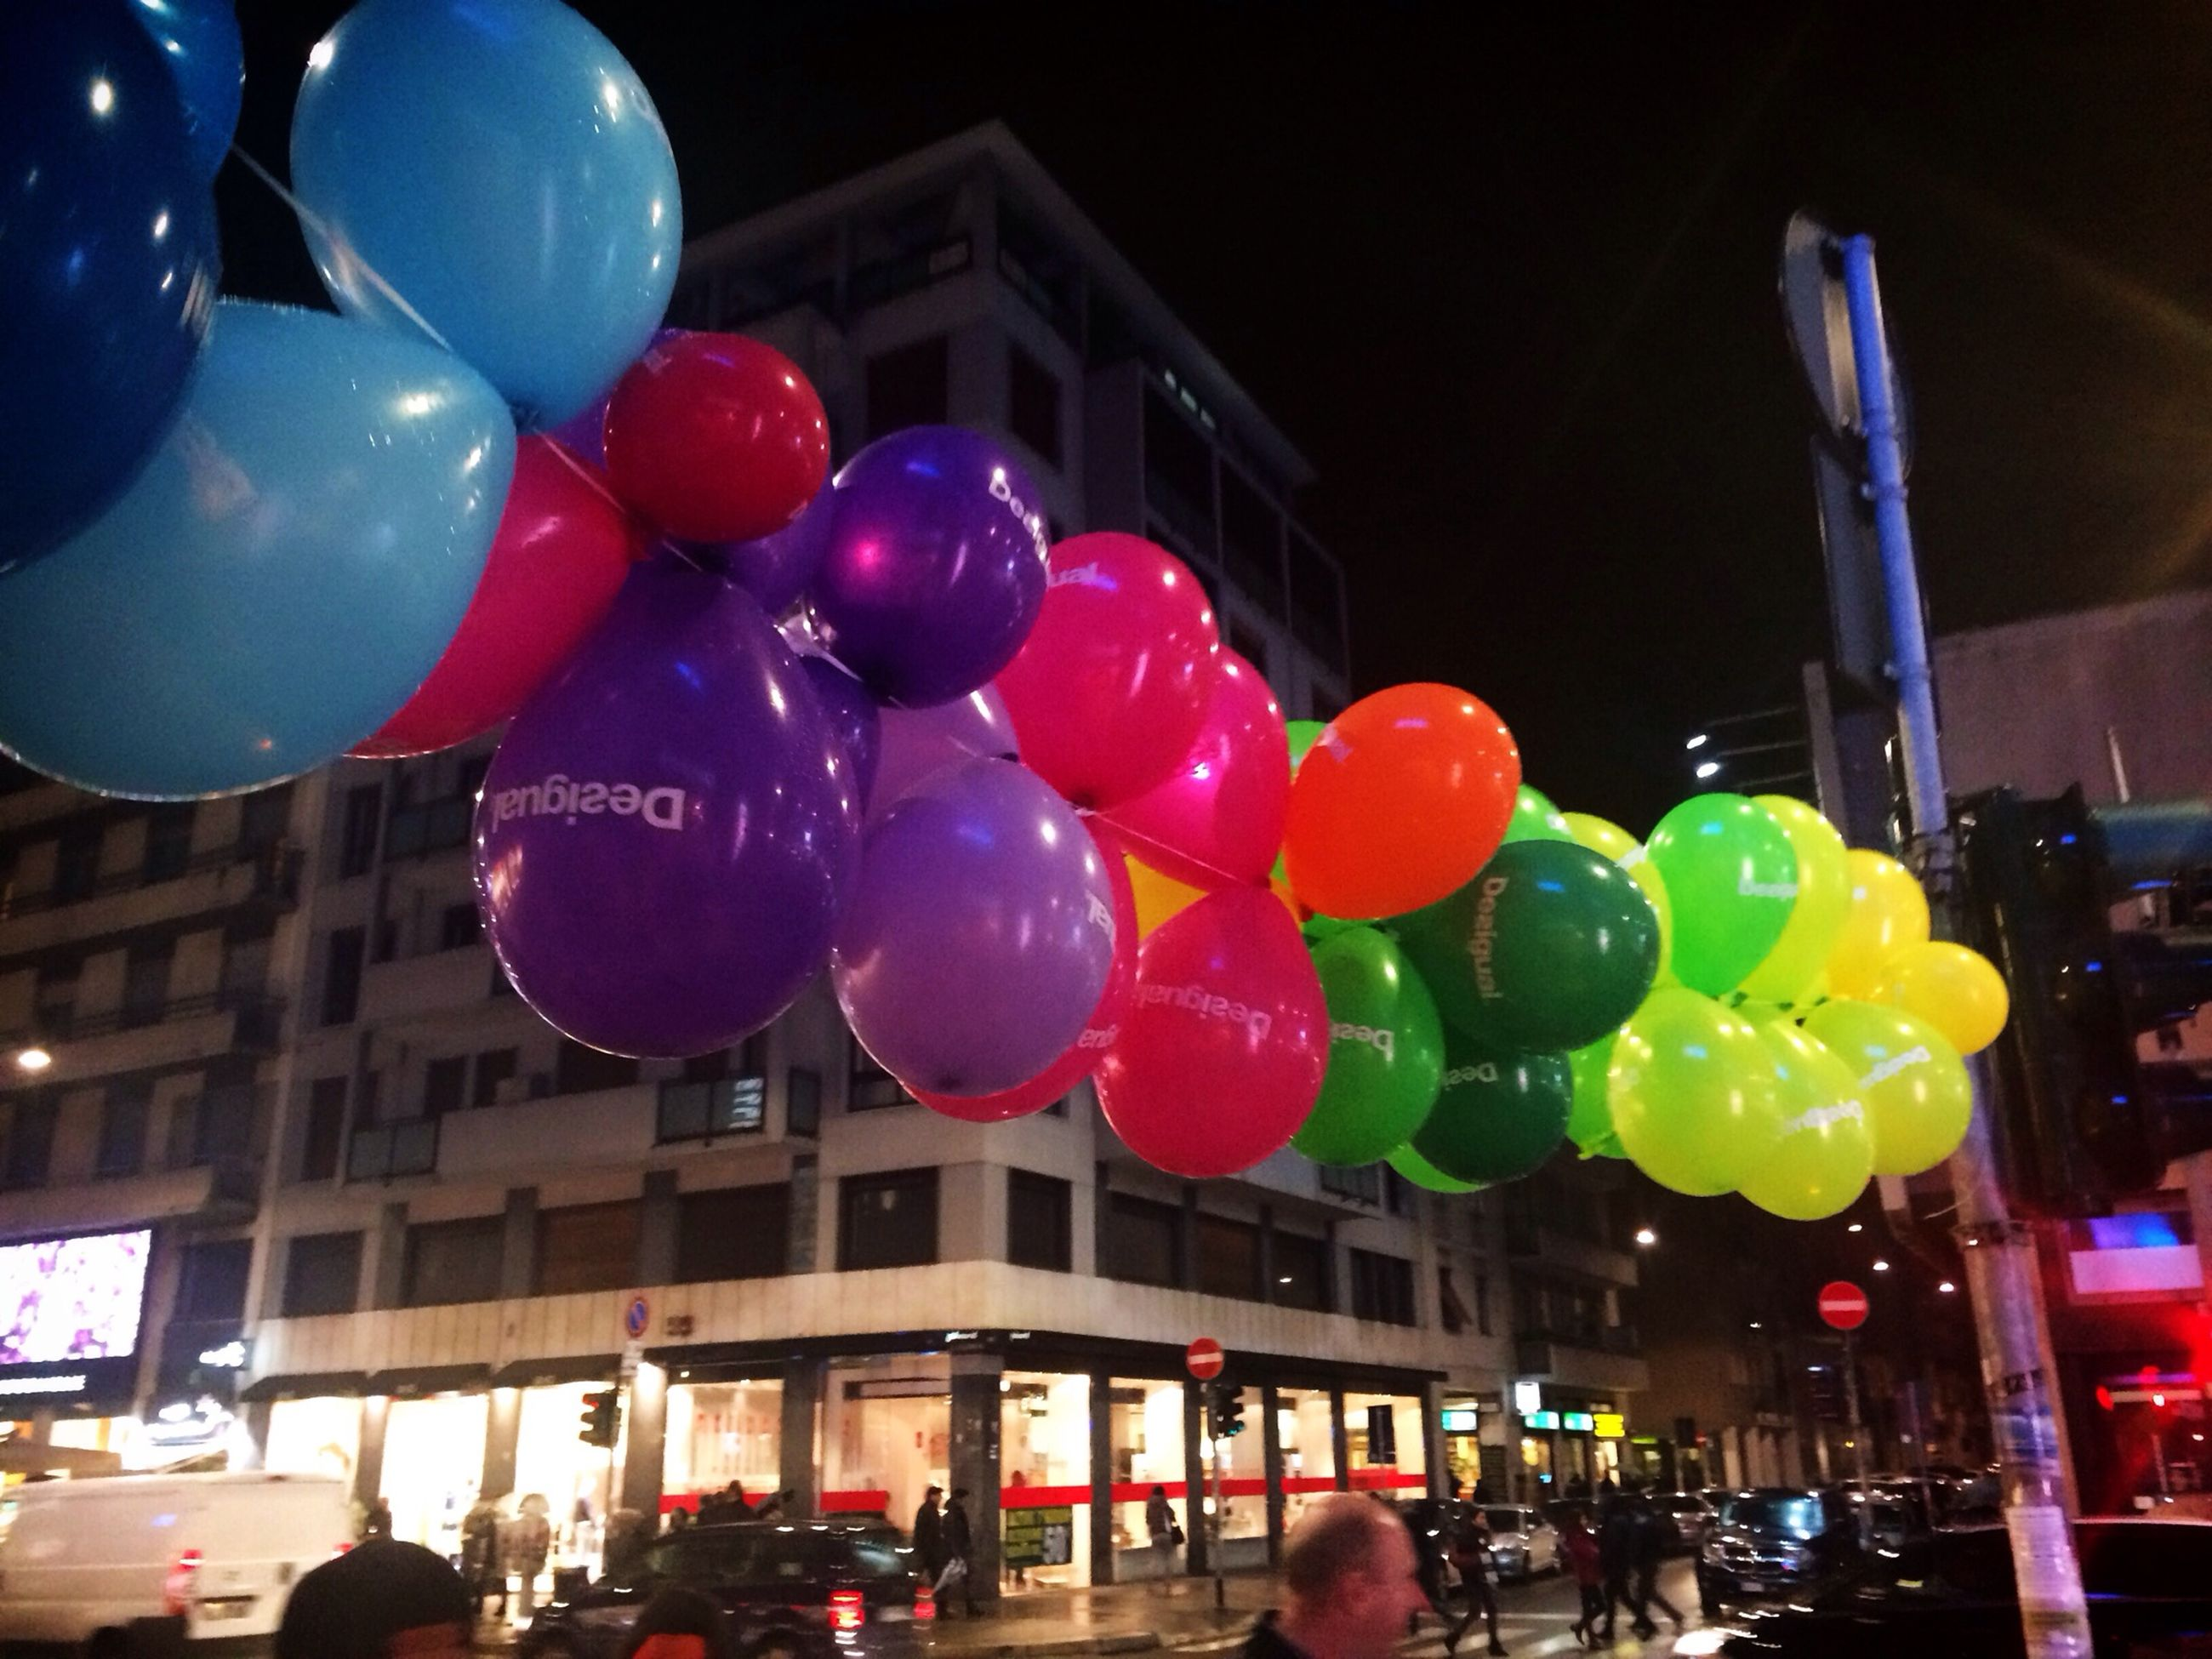 multi colored, balloon, celebration, illuminated, building exterior, hanging, night, built structure, architecture, variation, city, decoration, lighting equipment, large group of objects, choice, low angle view, colorful, leisure activity, outdoors